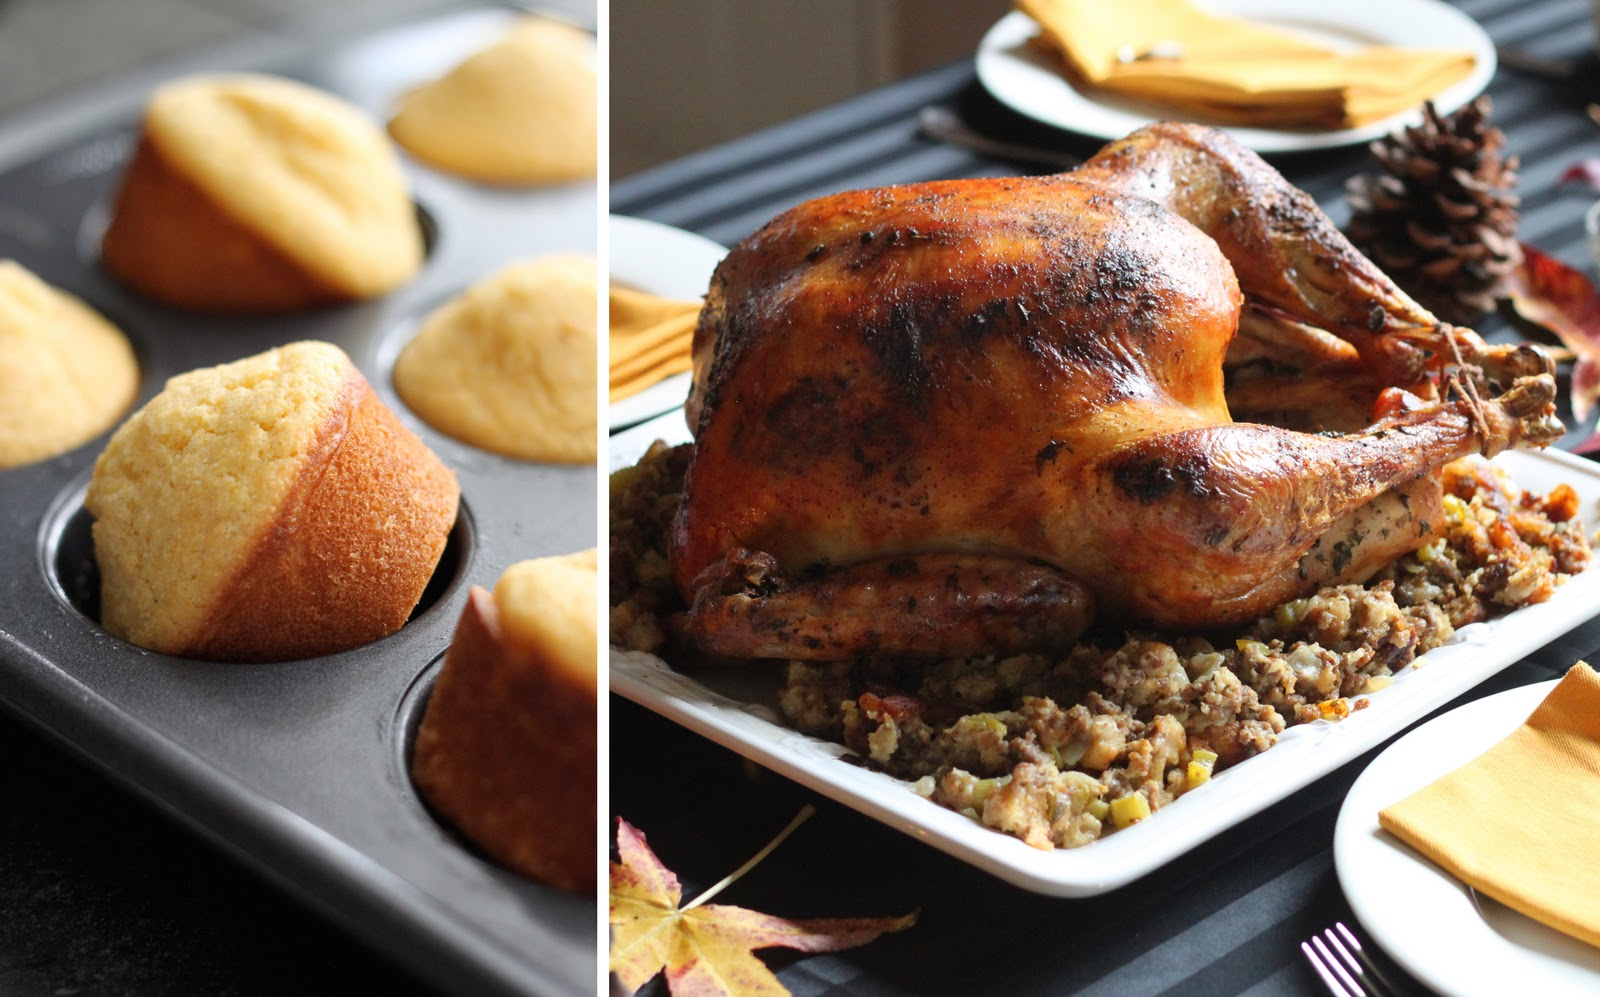 The Cilantropist: Honey Cornbread Muffins, and My Thanksgiving Meal